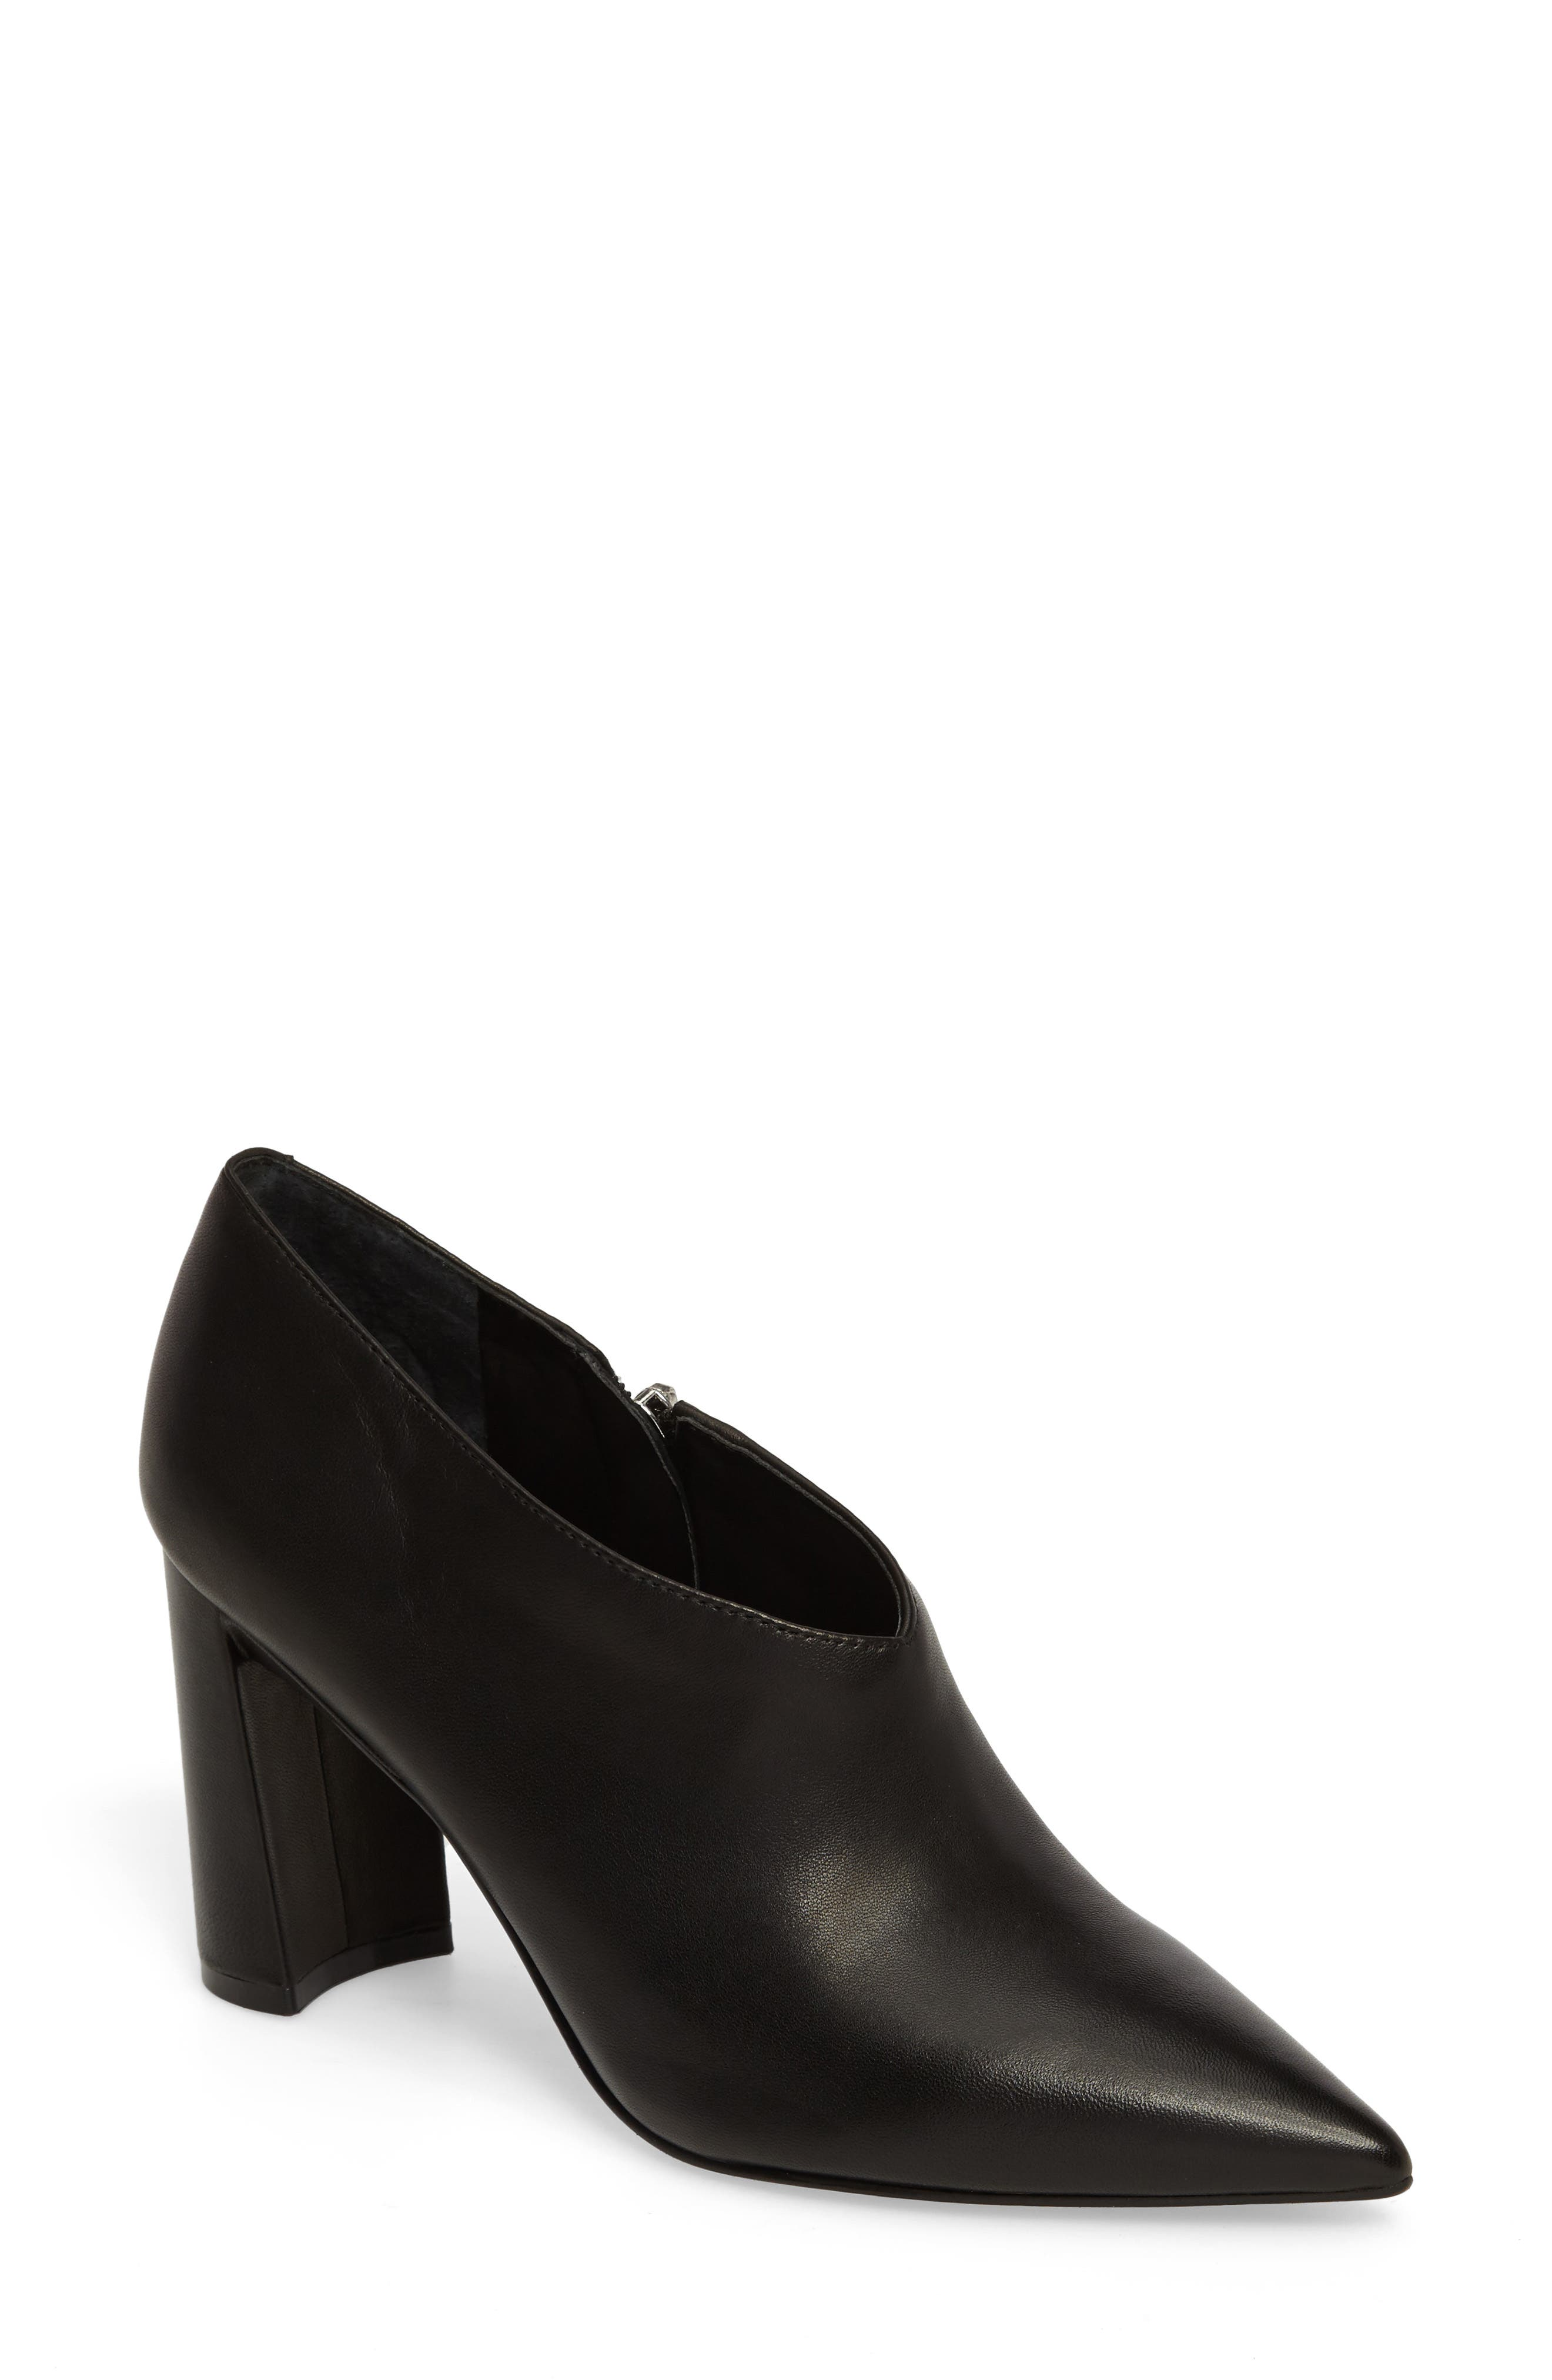 Hoda Pointy Toe Bootie,                             Main thumbnail 1, color,                             Black Leather